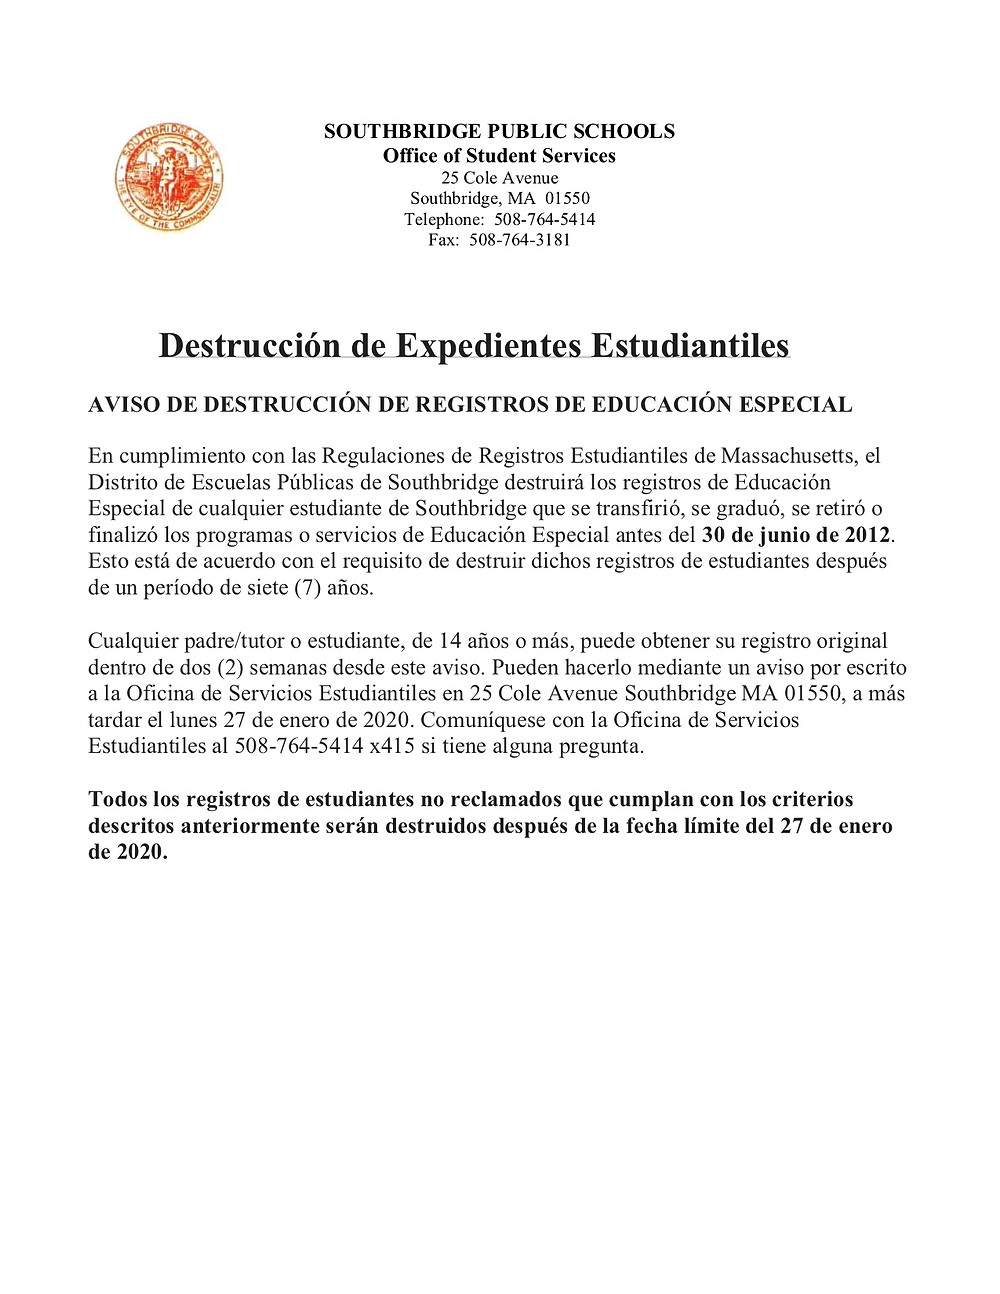 Image of letter in Spanish regarding student records with link to the document